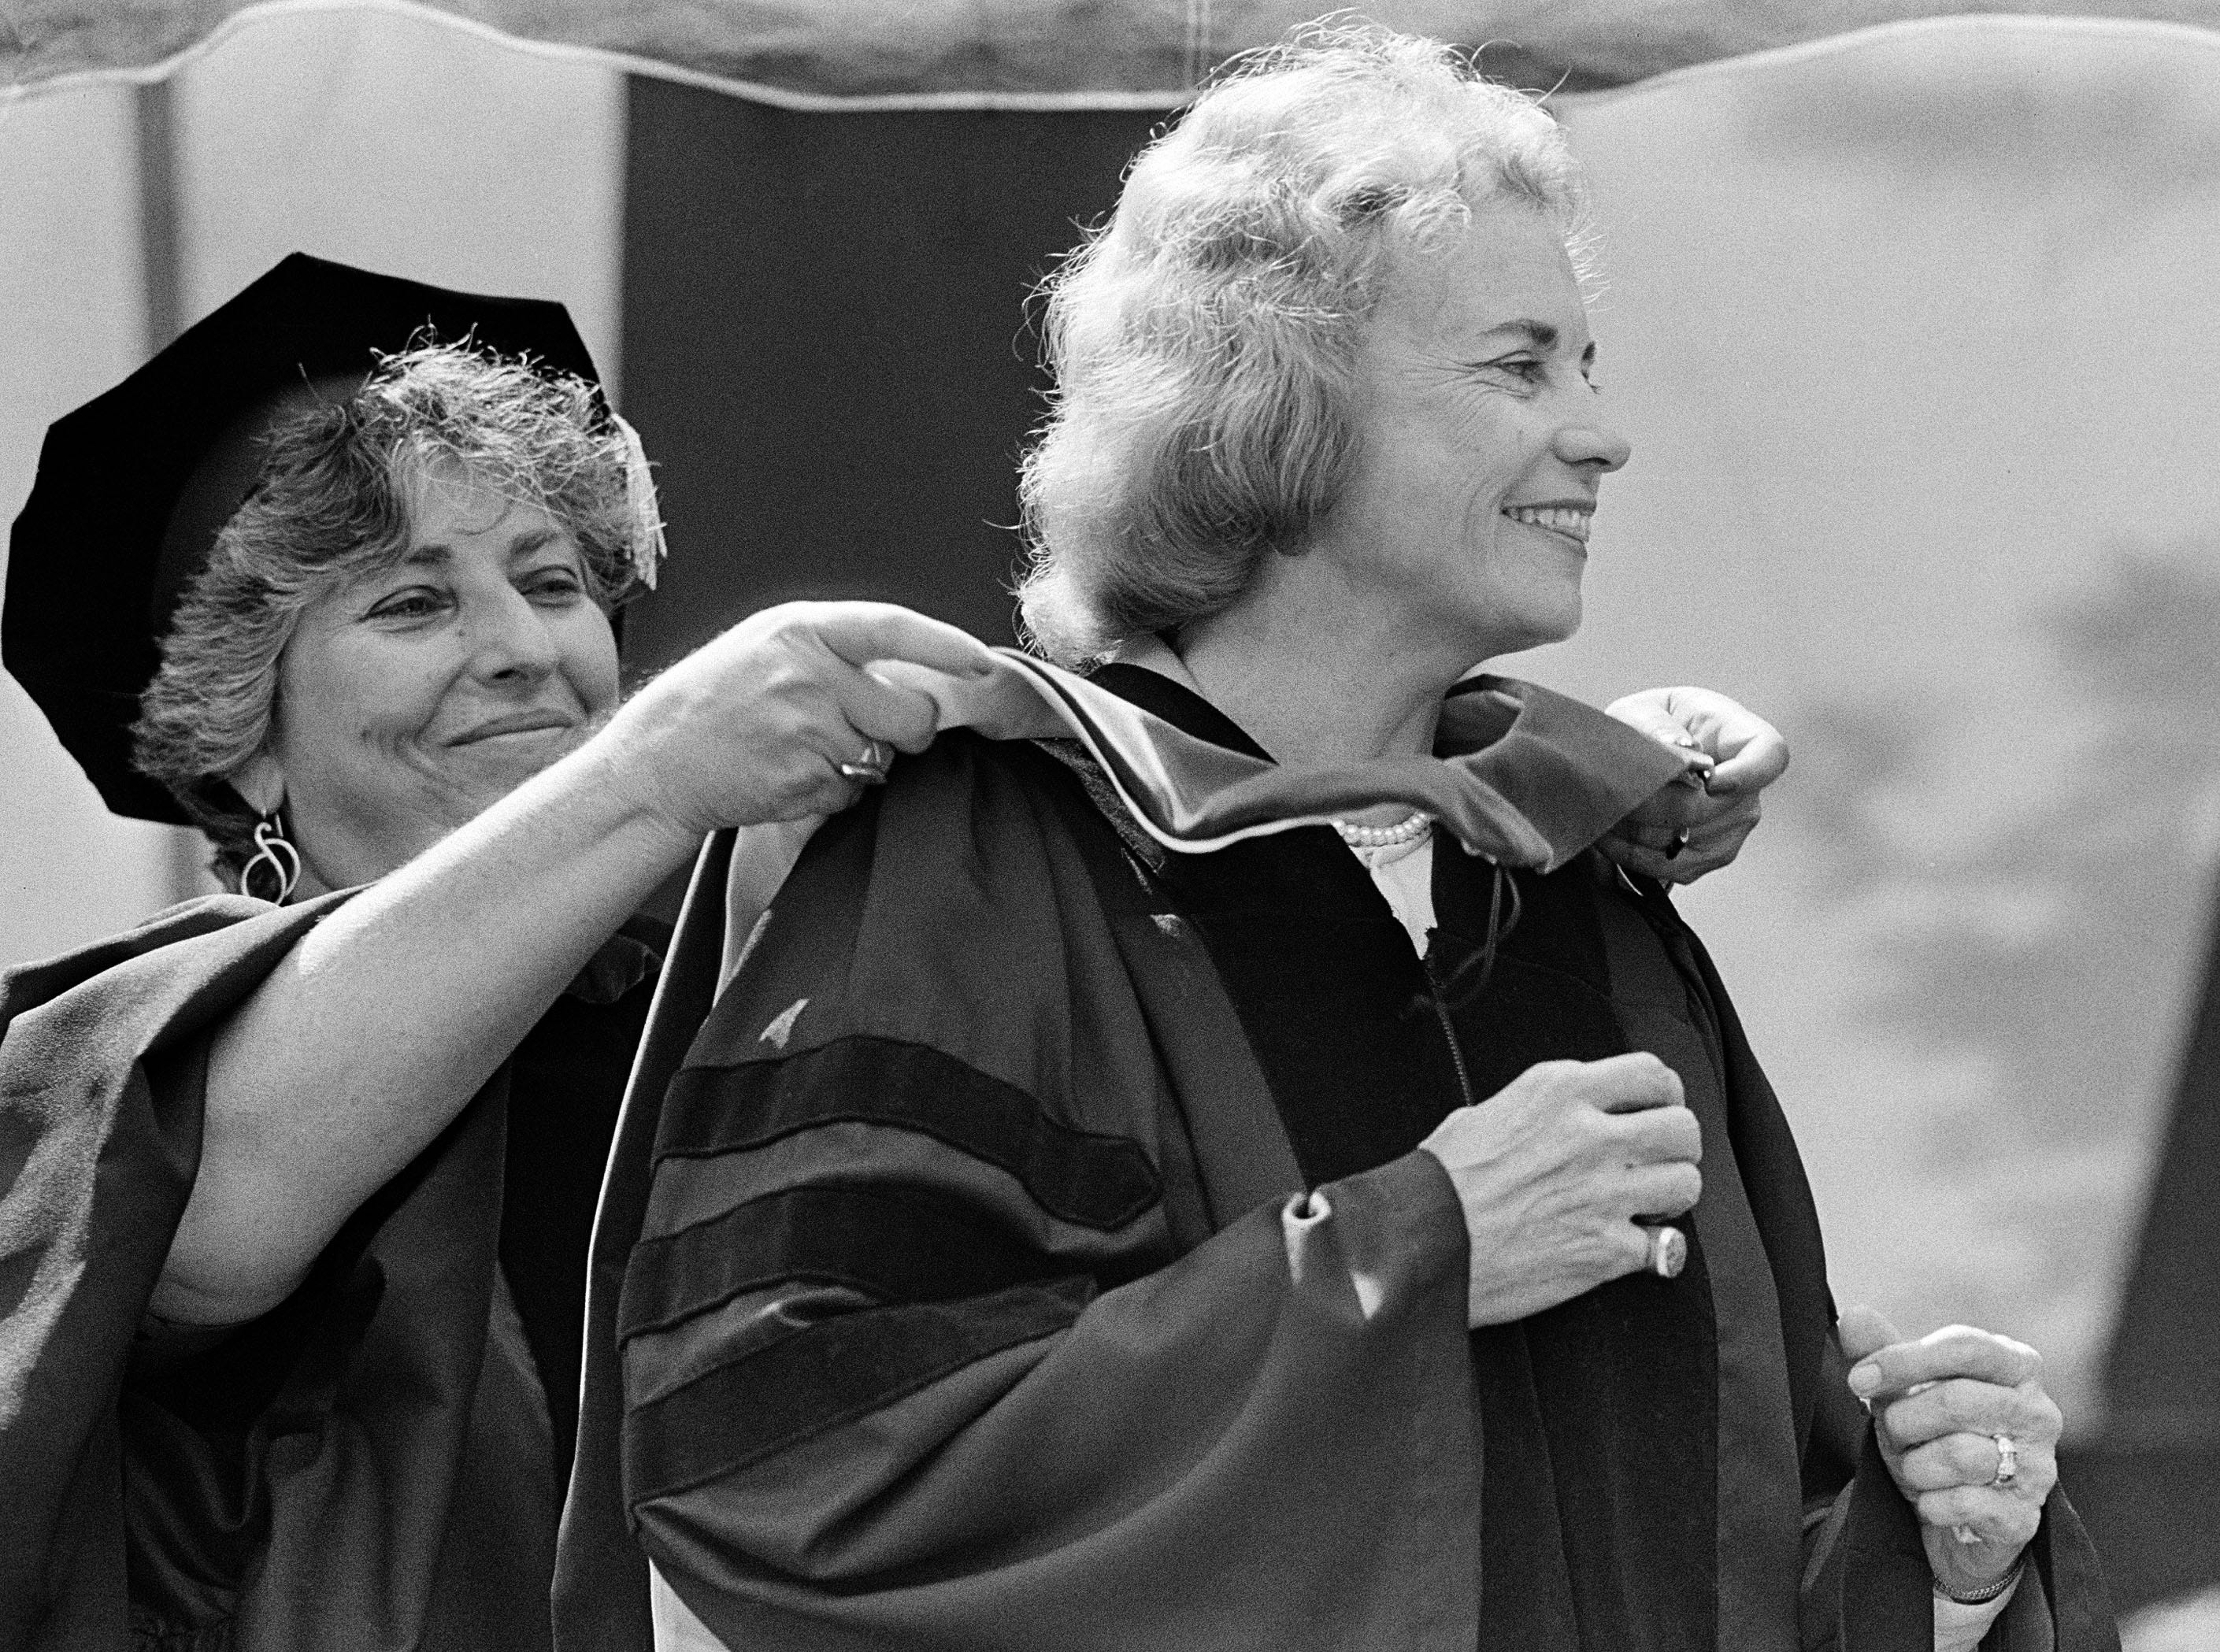 Supreme Court Justice Sandra Day O'Connor appears at Wheaton College, May 25, 1985.  She gave the commencement address and received an honorary degree.